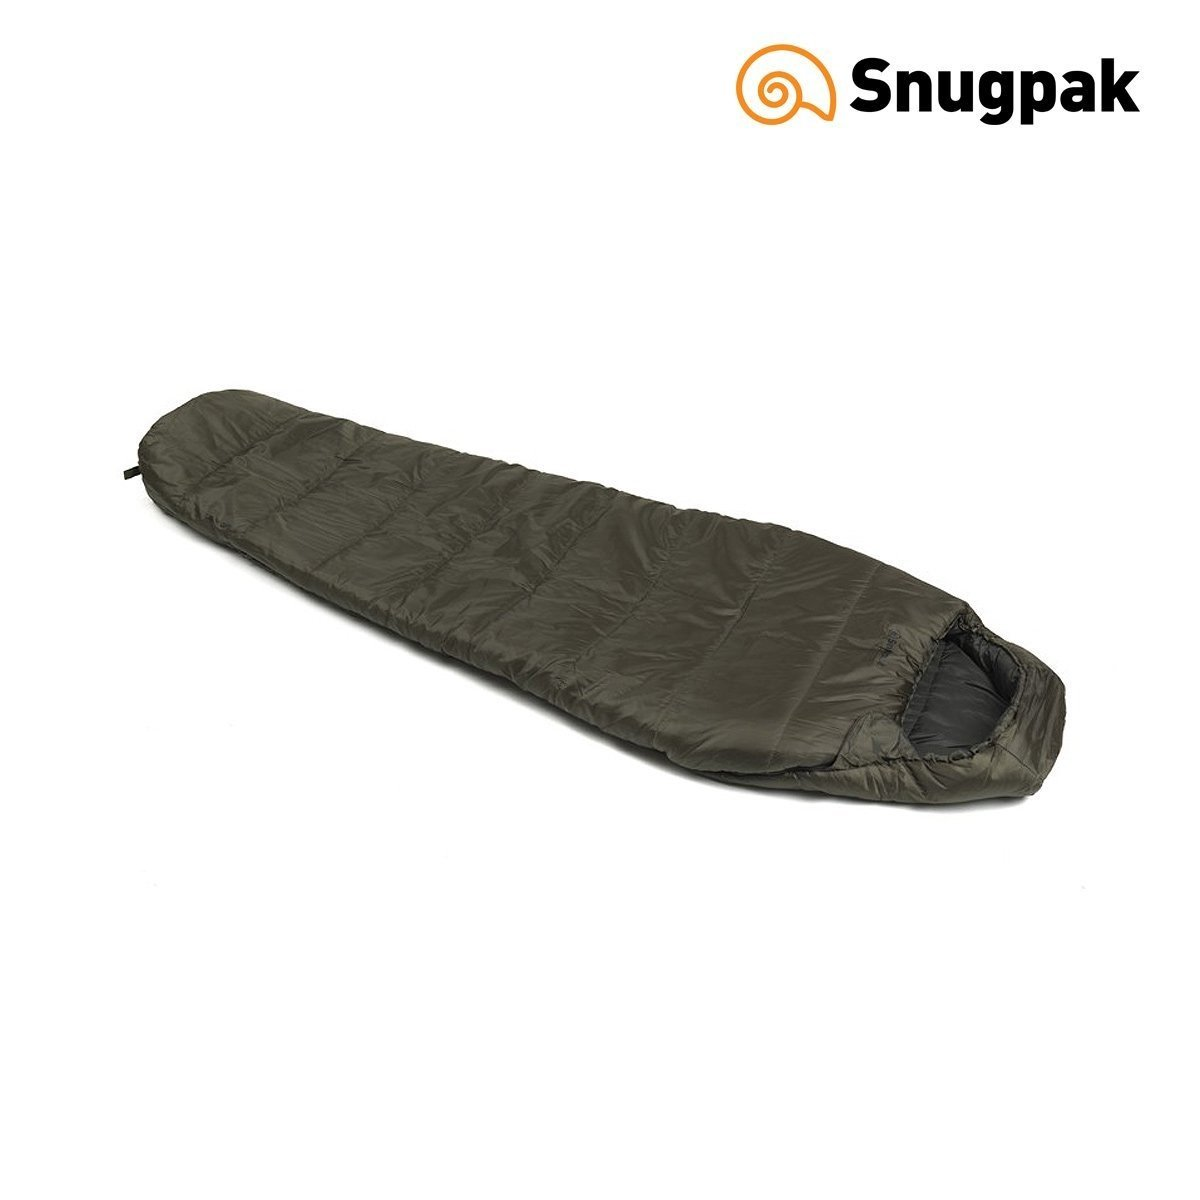 SAC DE COUCHAGE SLEEPER LITE SNUGPAK